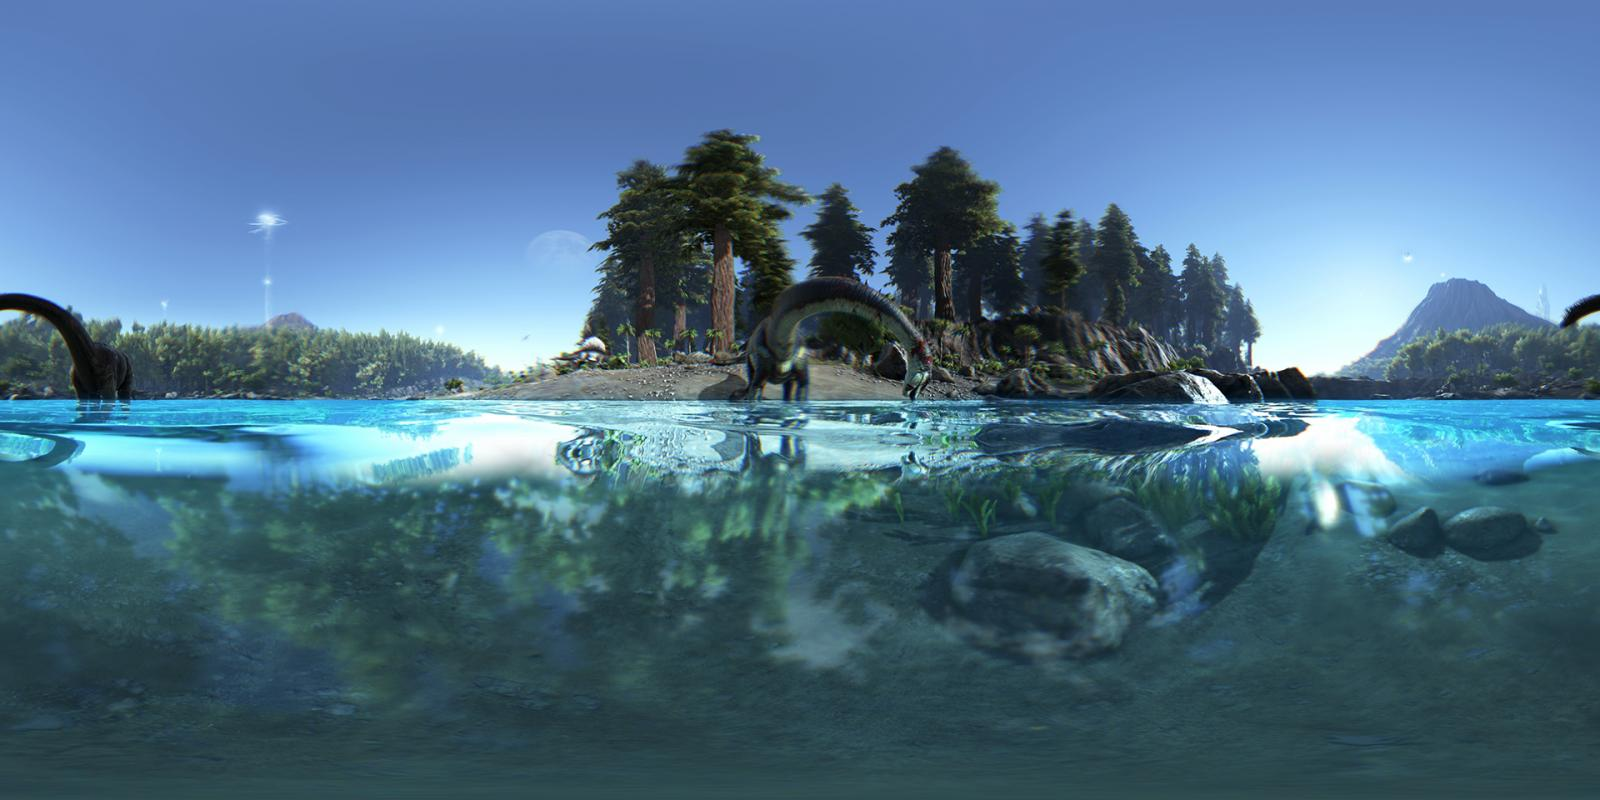 large.58b0fbe0b0b4d_FataL1ty-Brontoslikewater-Panoramic360Stereoscopic3D.jpg